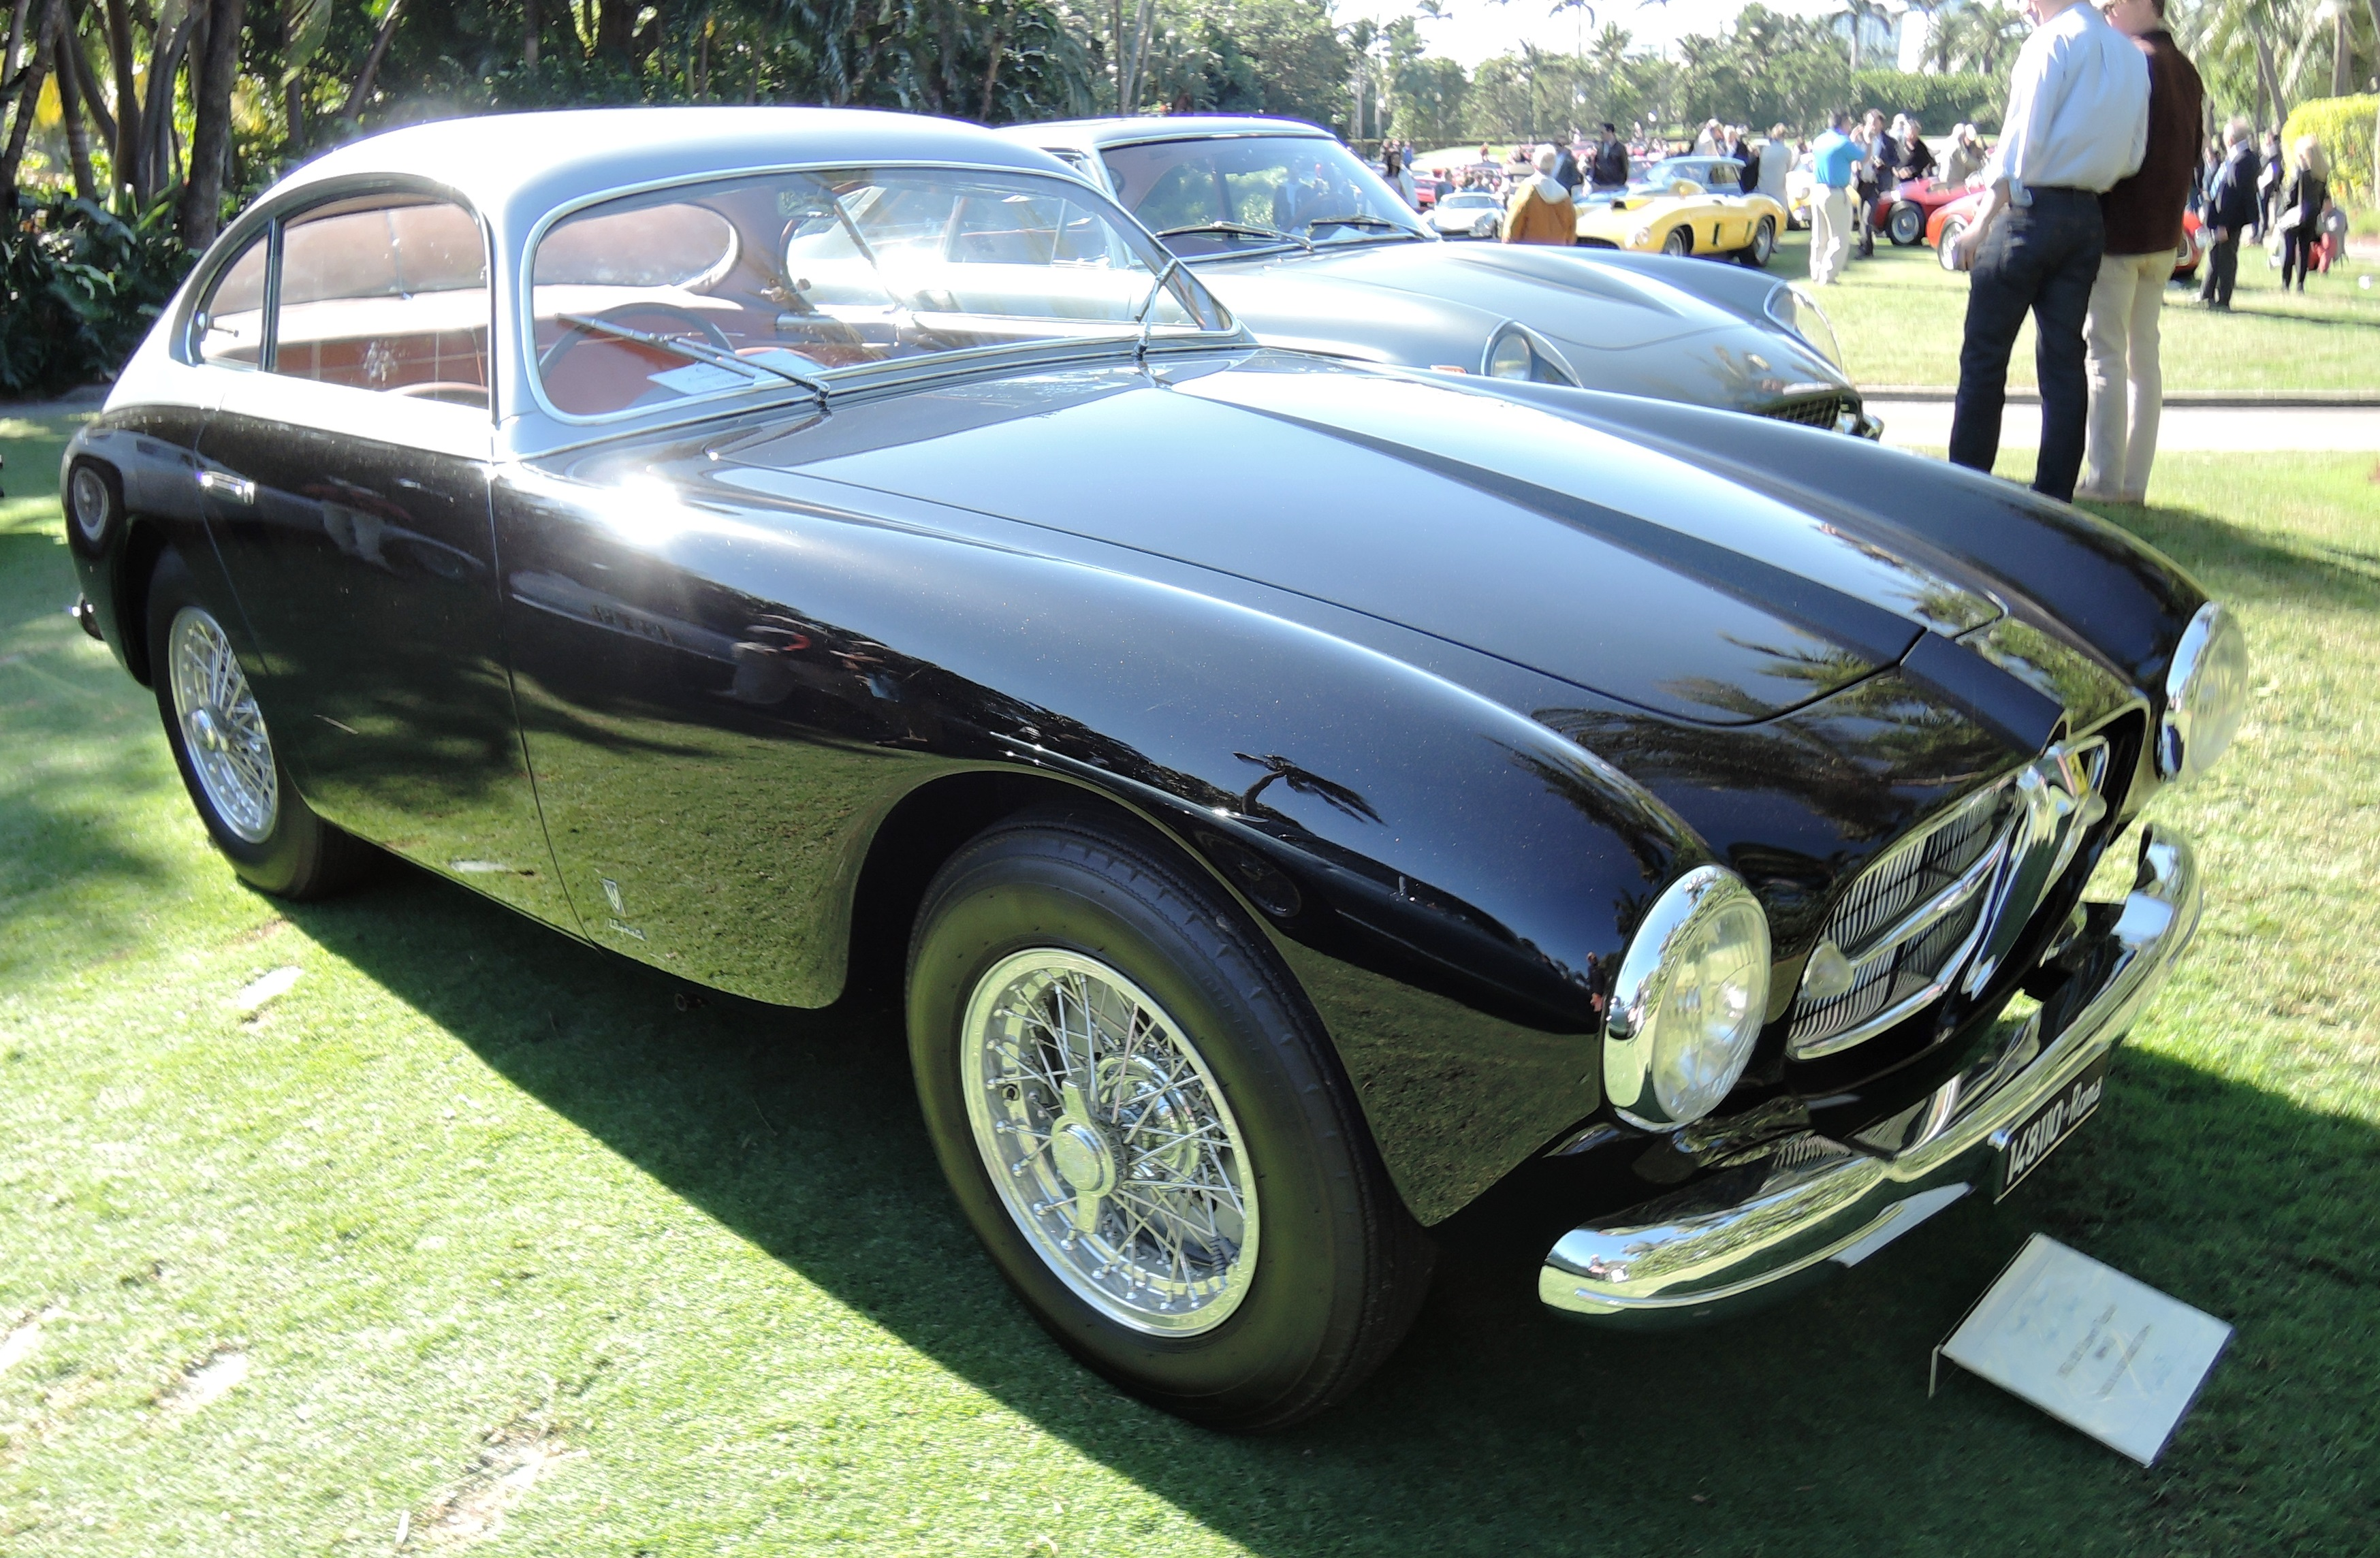 1951 Ferrari 212 Export Vignale s/n 0080 E owned by Brian & Kimberly Ross - Cavallino Classic